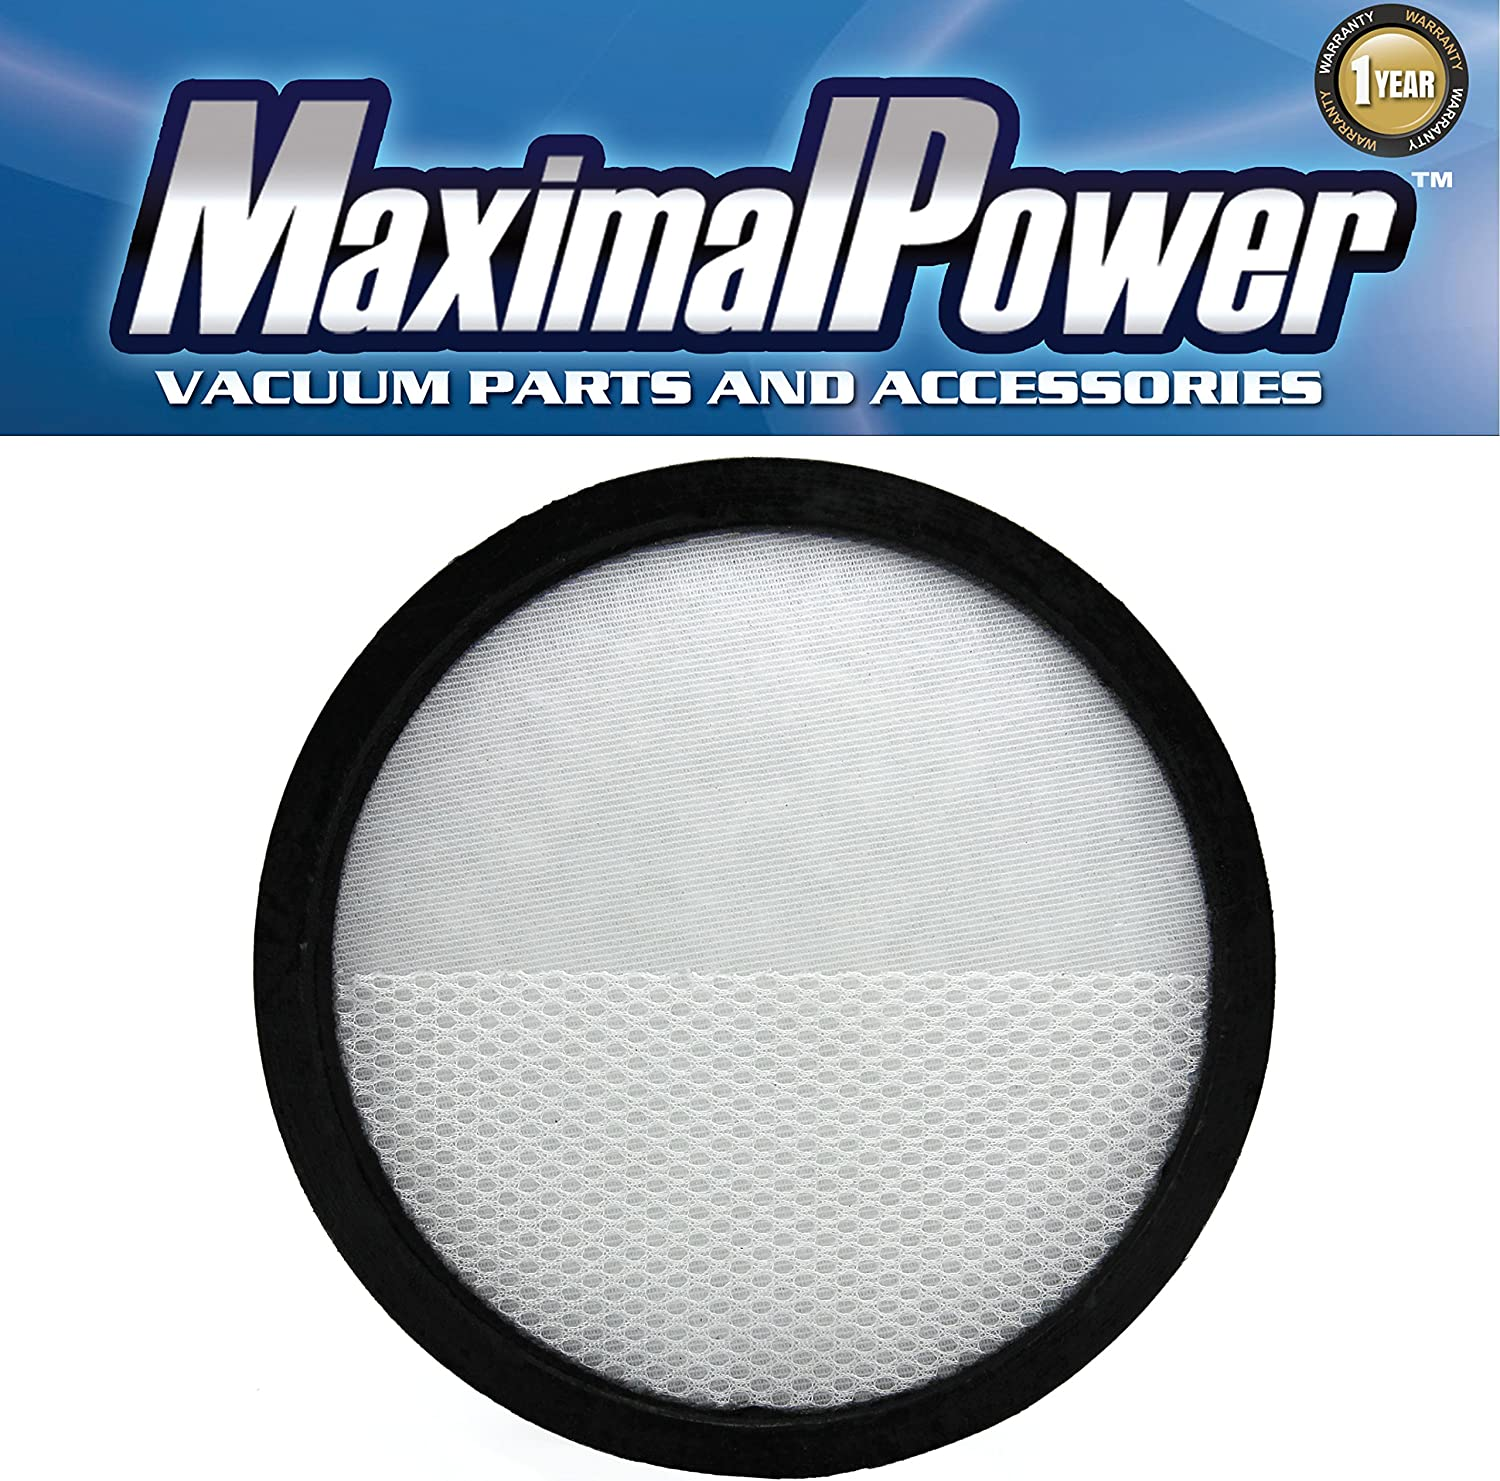 MaximalPower Primary Filter for Hoover WindTunnel Air Model UH70400 & UH72400 Part # 303903001 Washable and Reusable